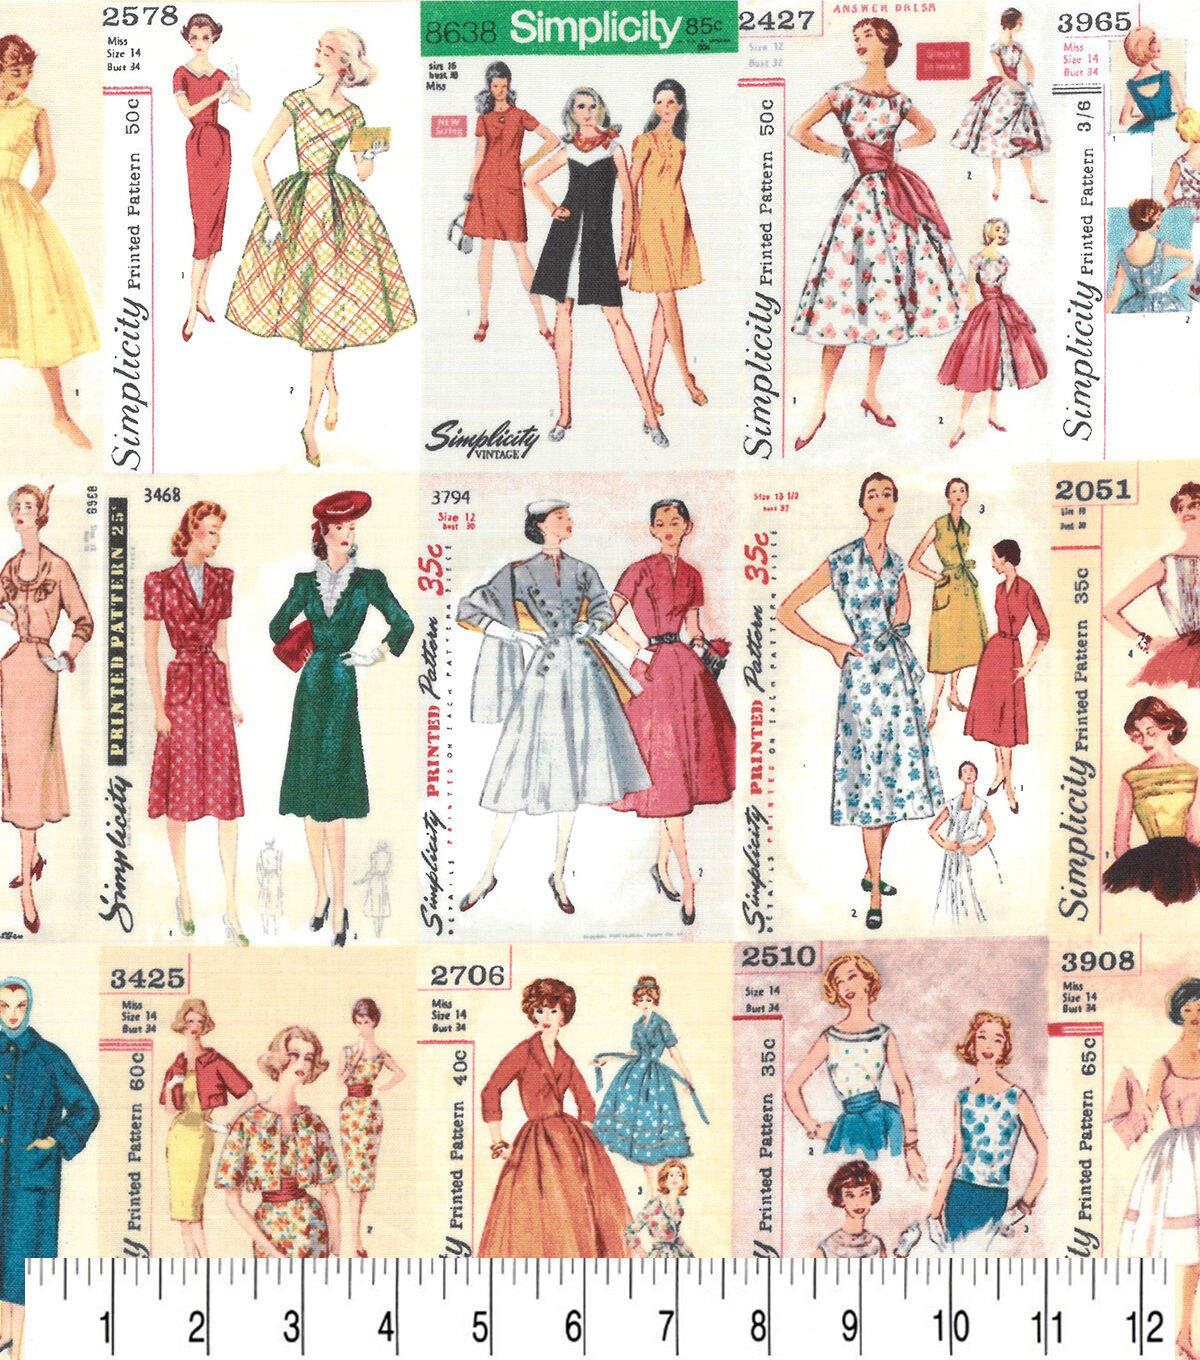 1950s Sewing Patterns | Dresses, Skirts, Tops, Mens Premium Cotton Fabric Simplicity Vintage Patterns $8.99 AT vintagedancer.com